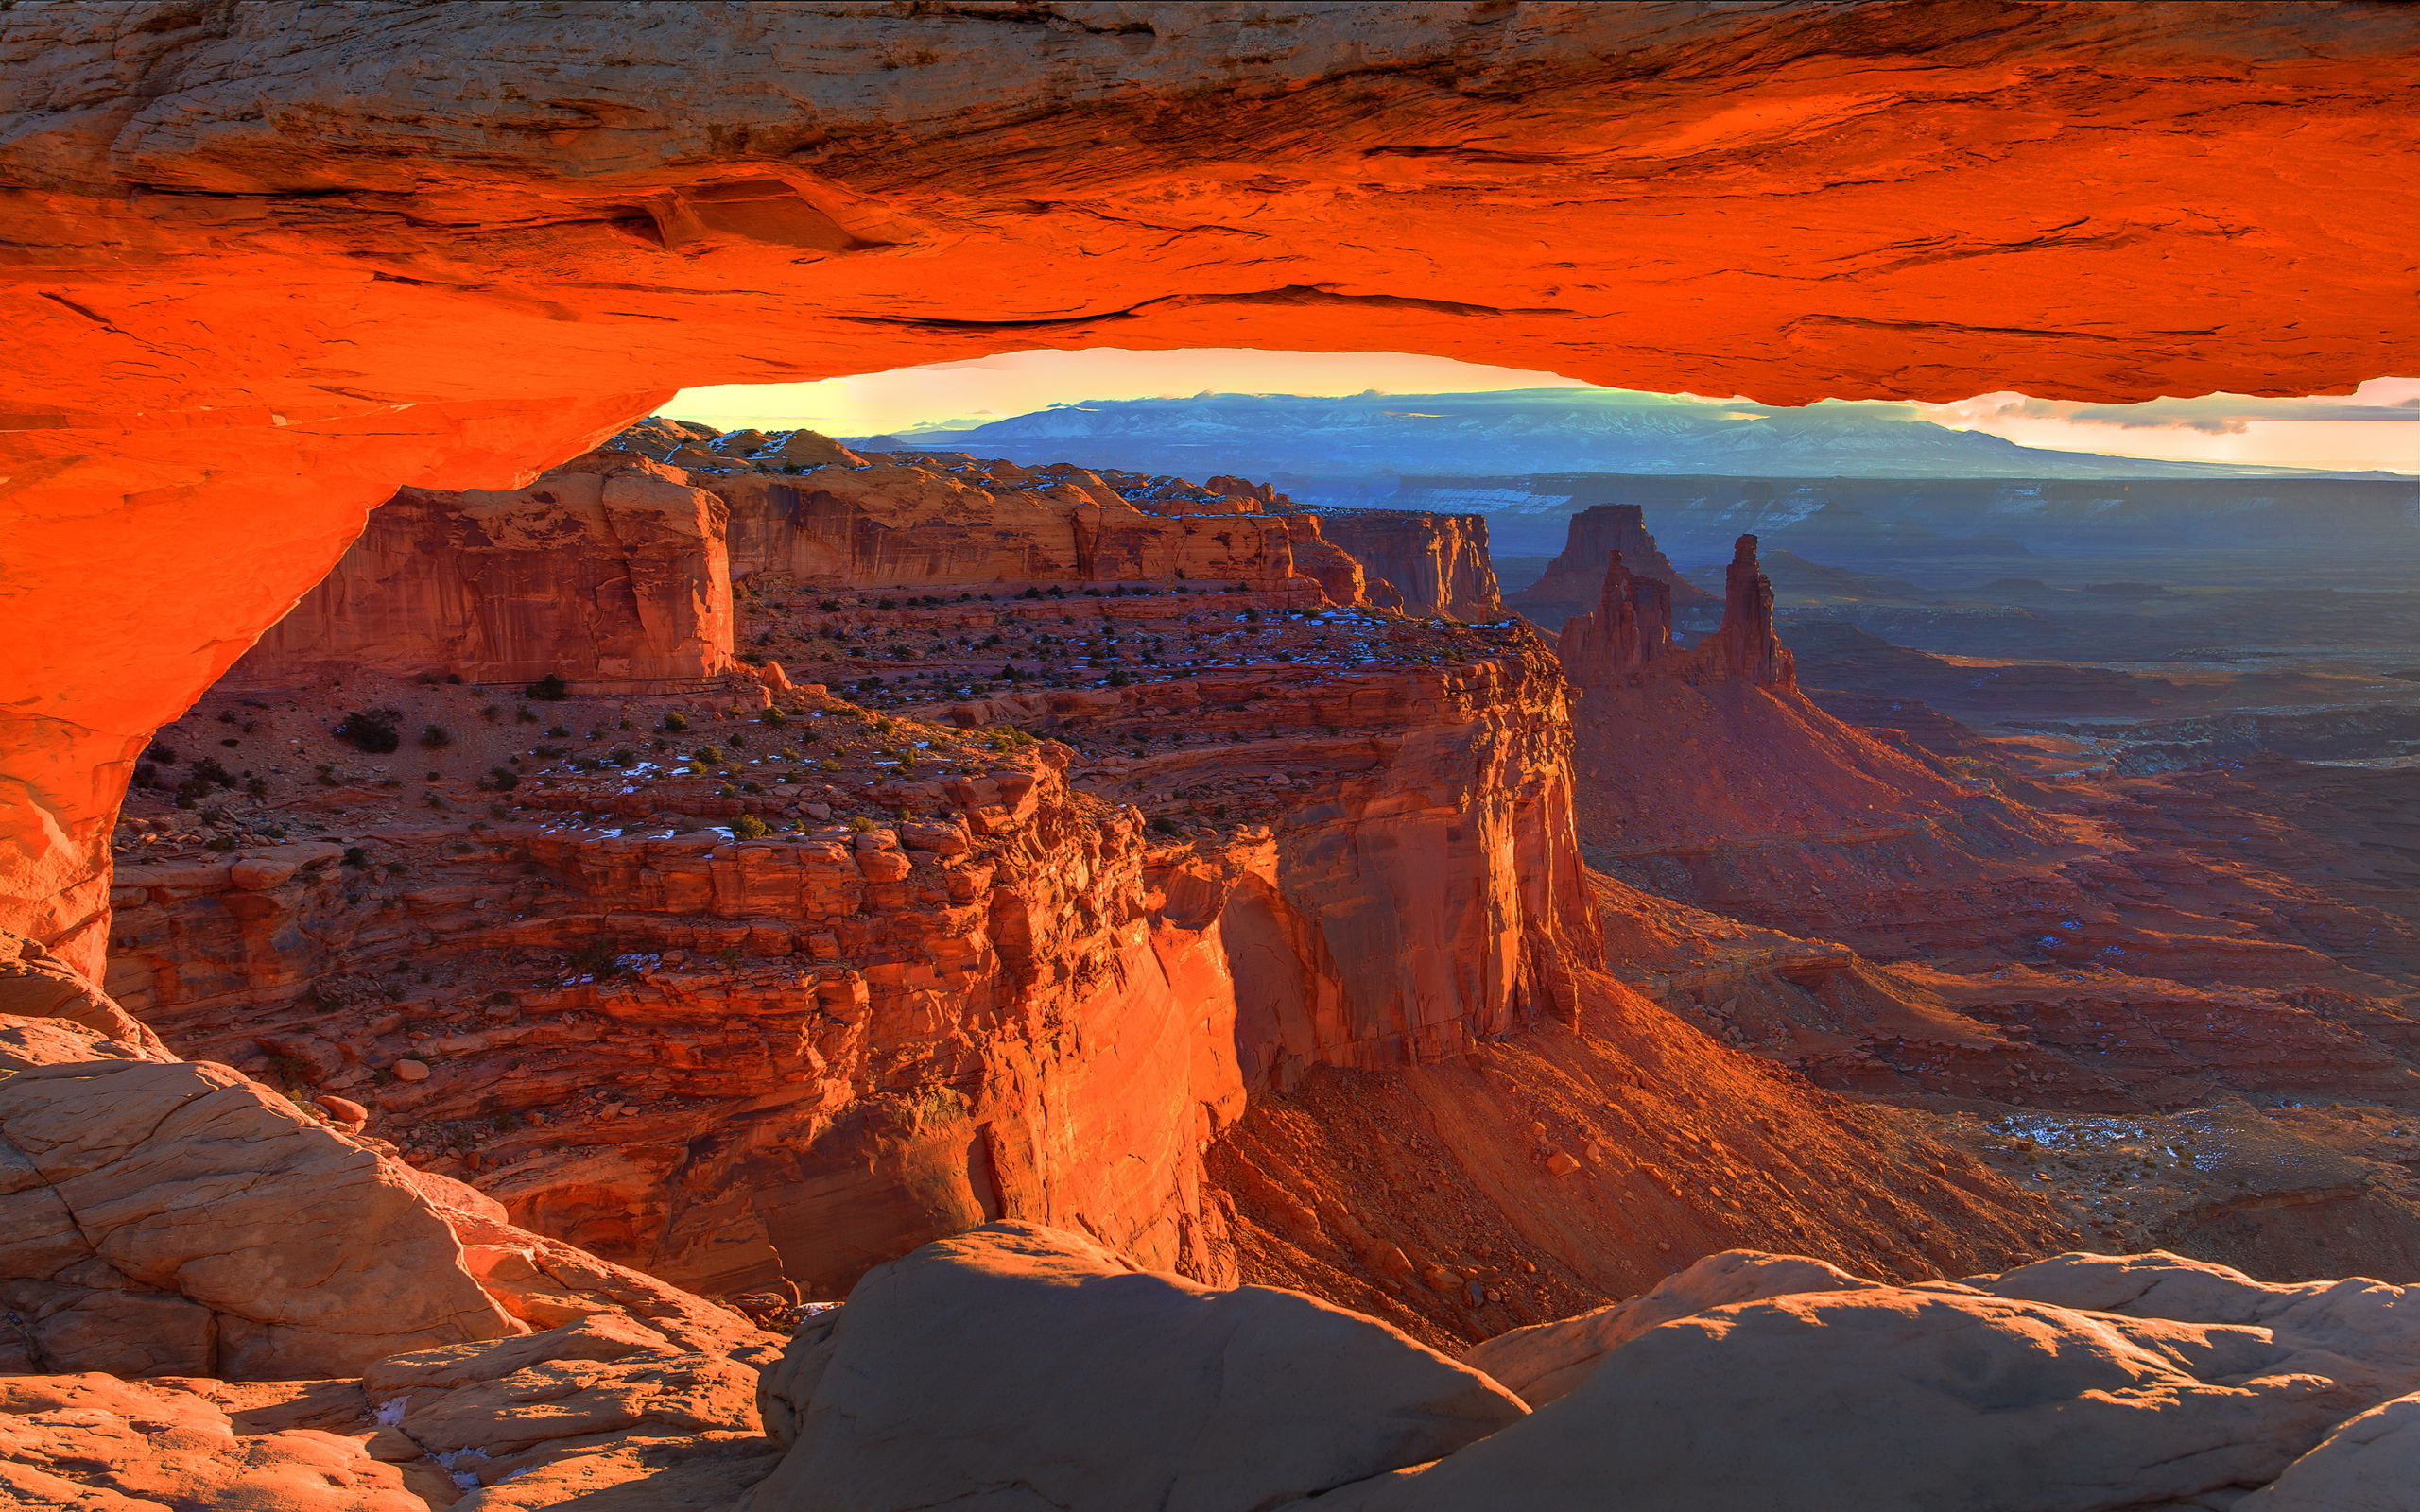 Related For Dyrholaey arch iceland. Mesa arch